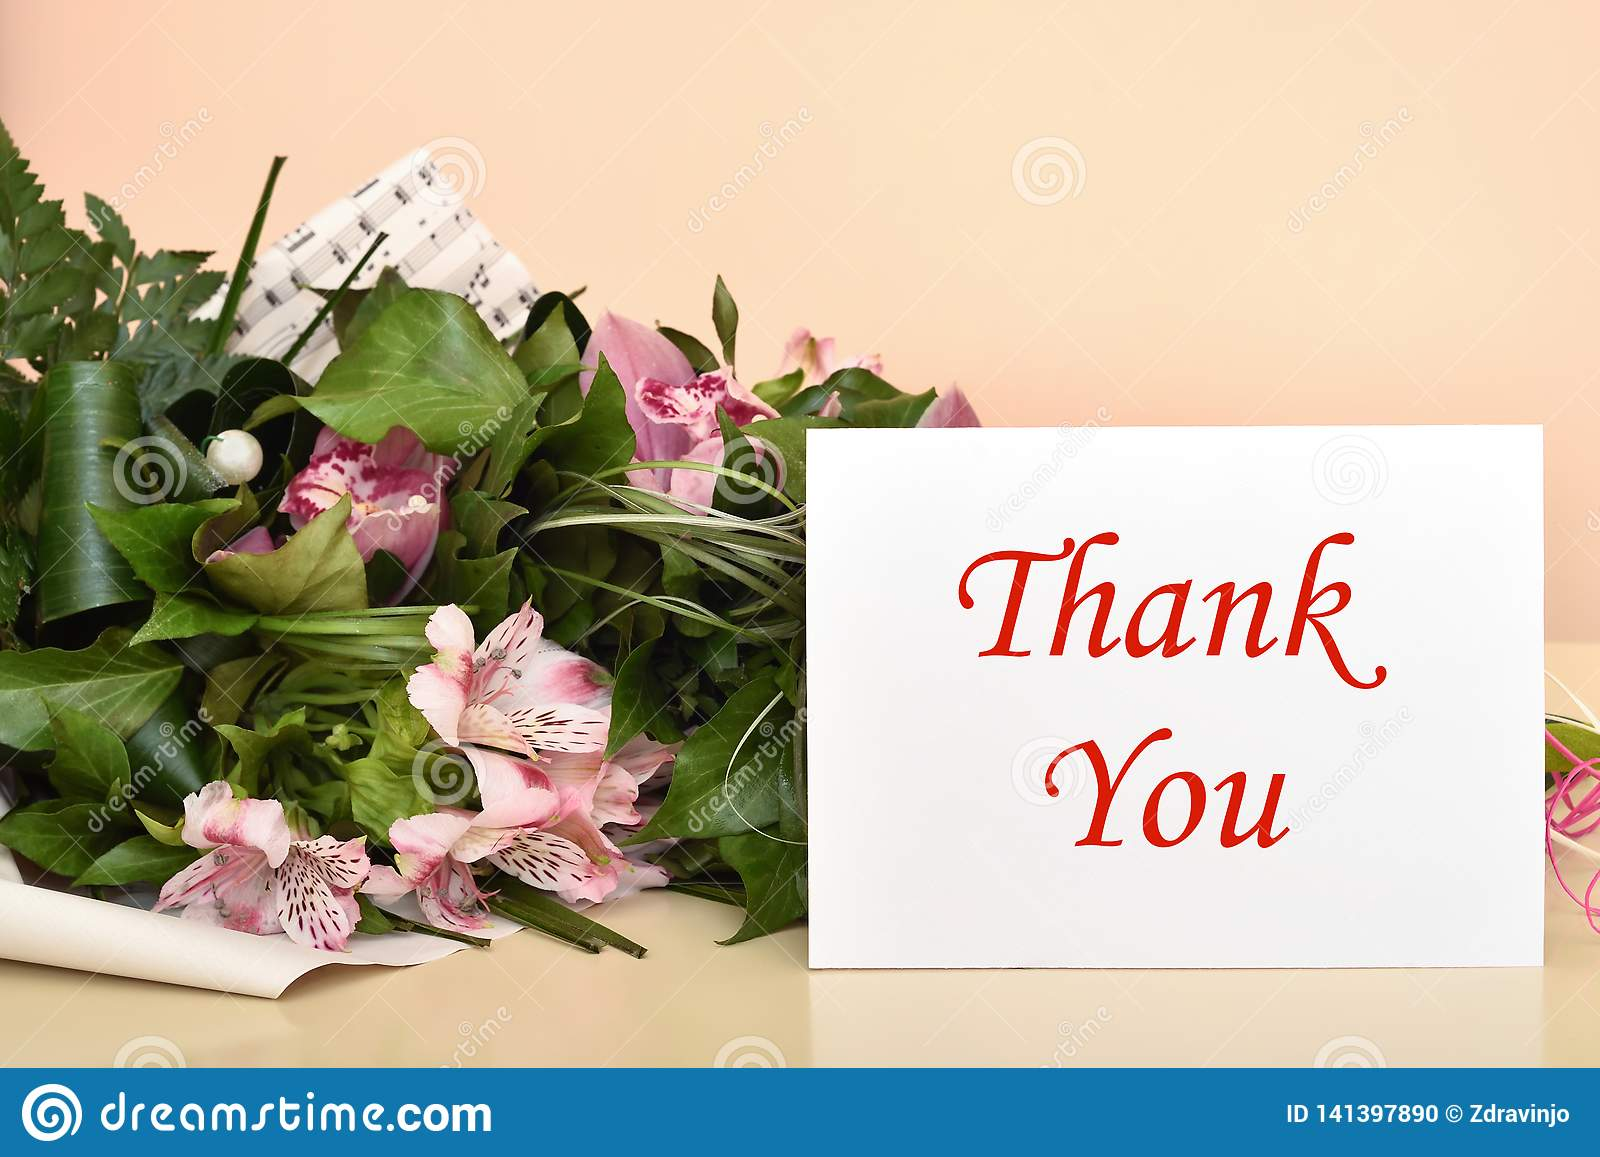 Flowers and greeting card with Thank You message